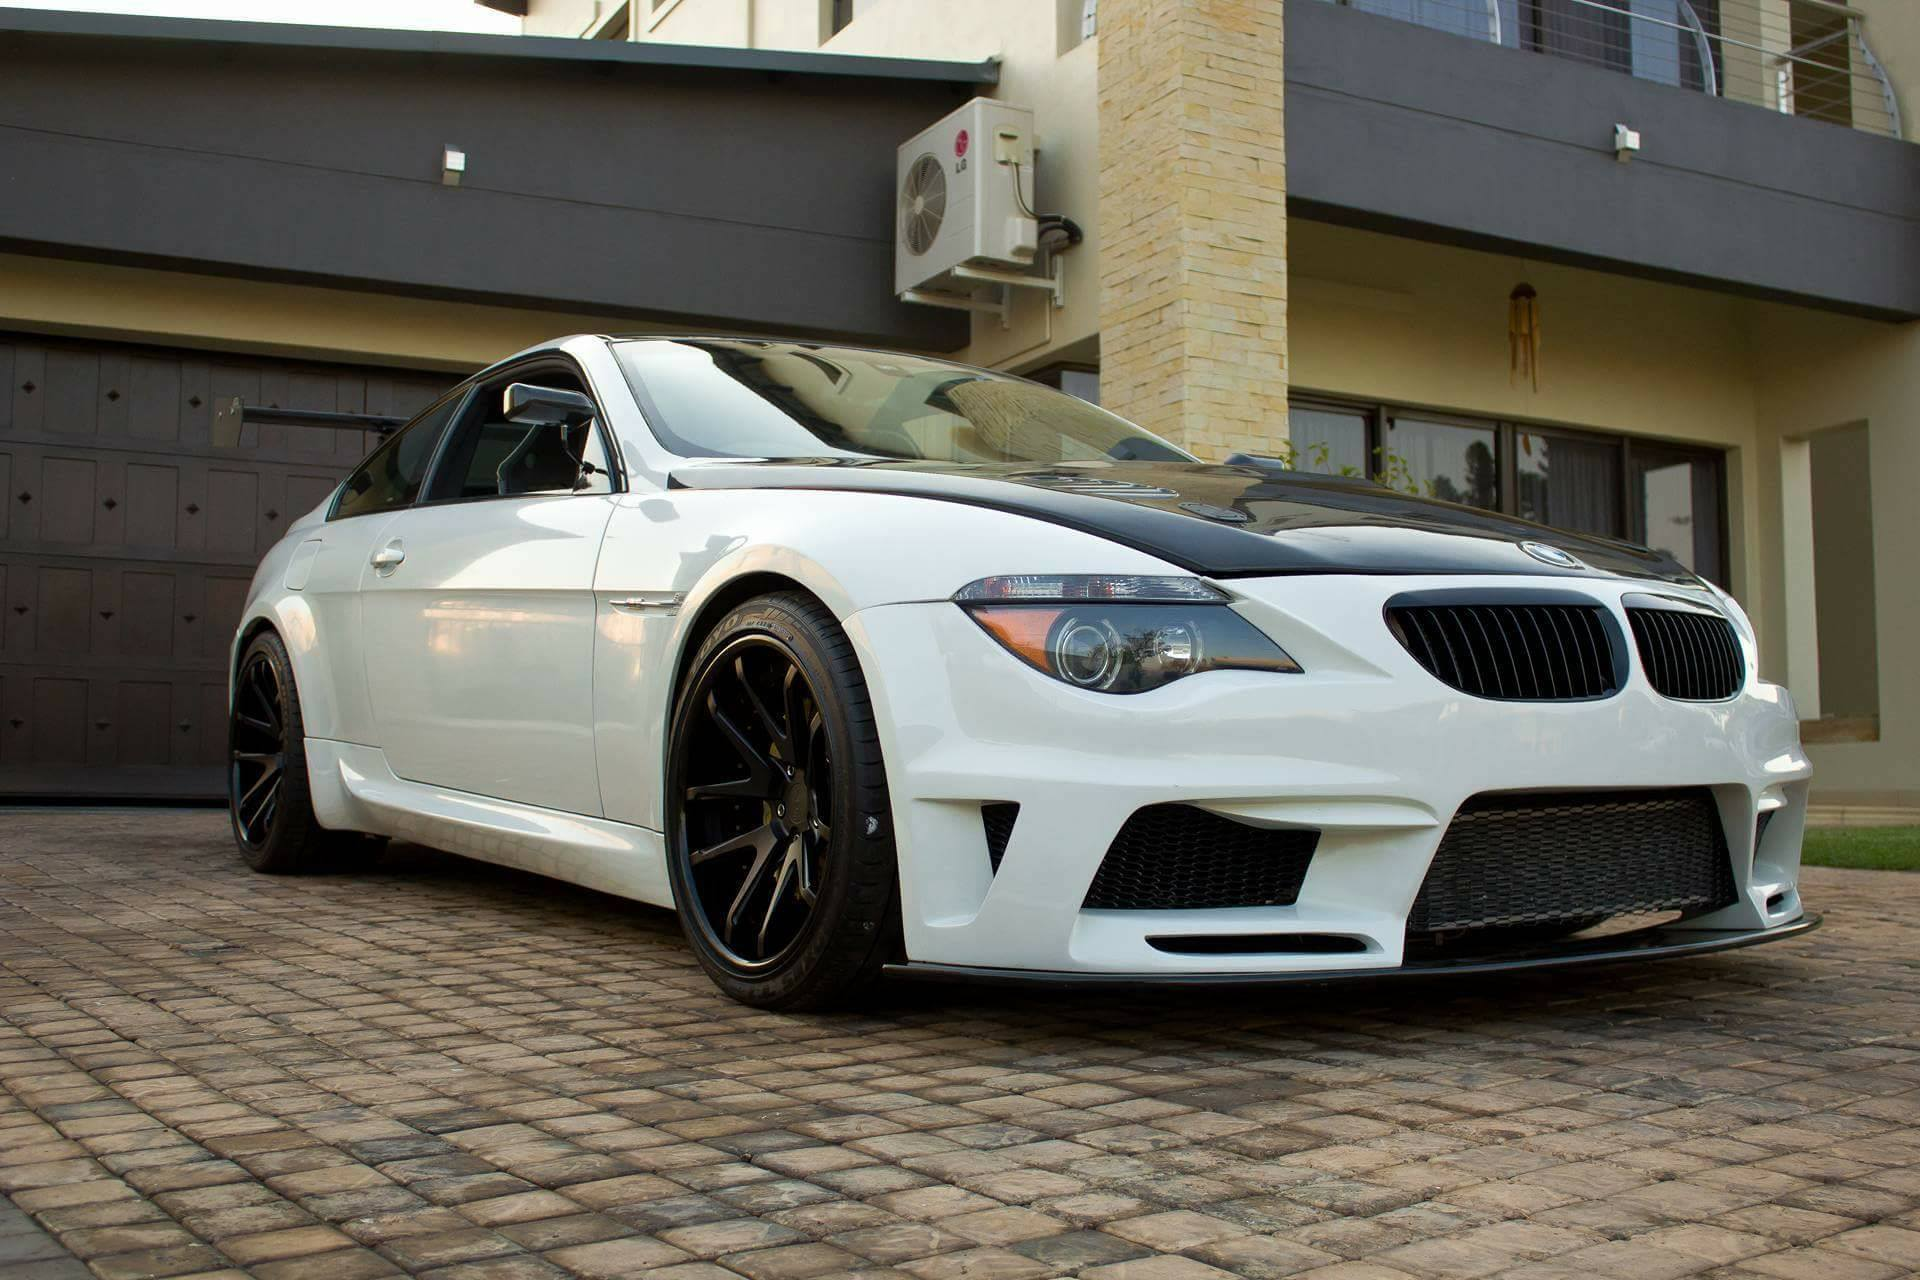 The Amazing Bmw M6 Project We Covered Many Times Is Finished And For Car Located In Johannesburg Gauteng South Africa You Need To Call